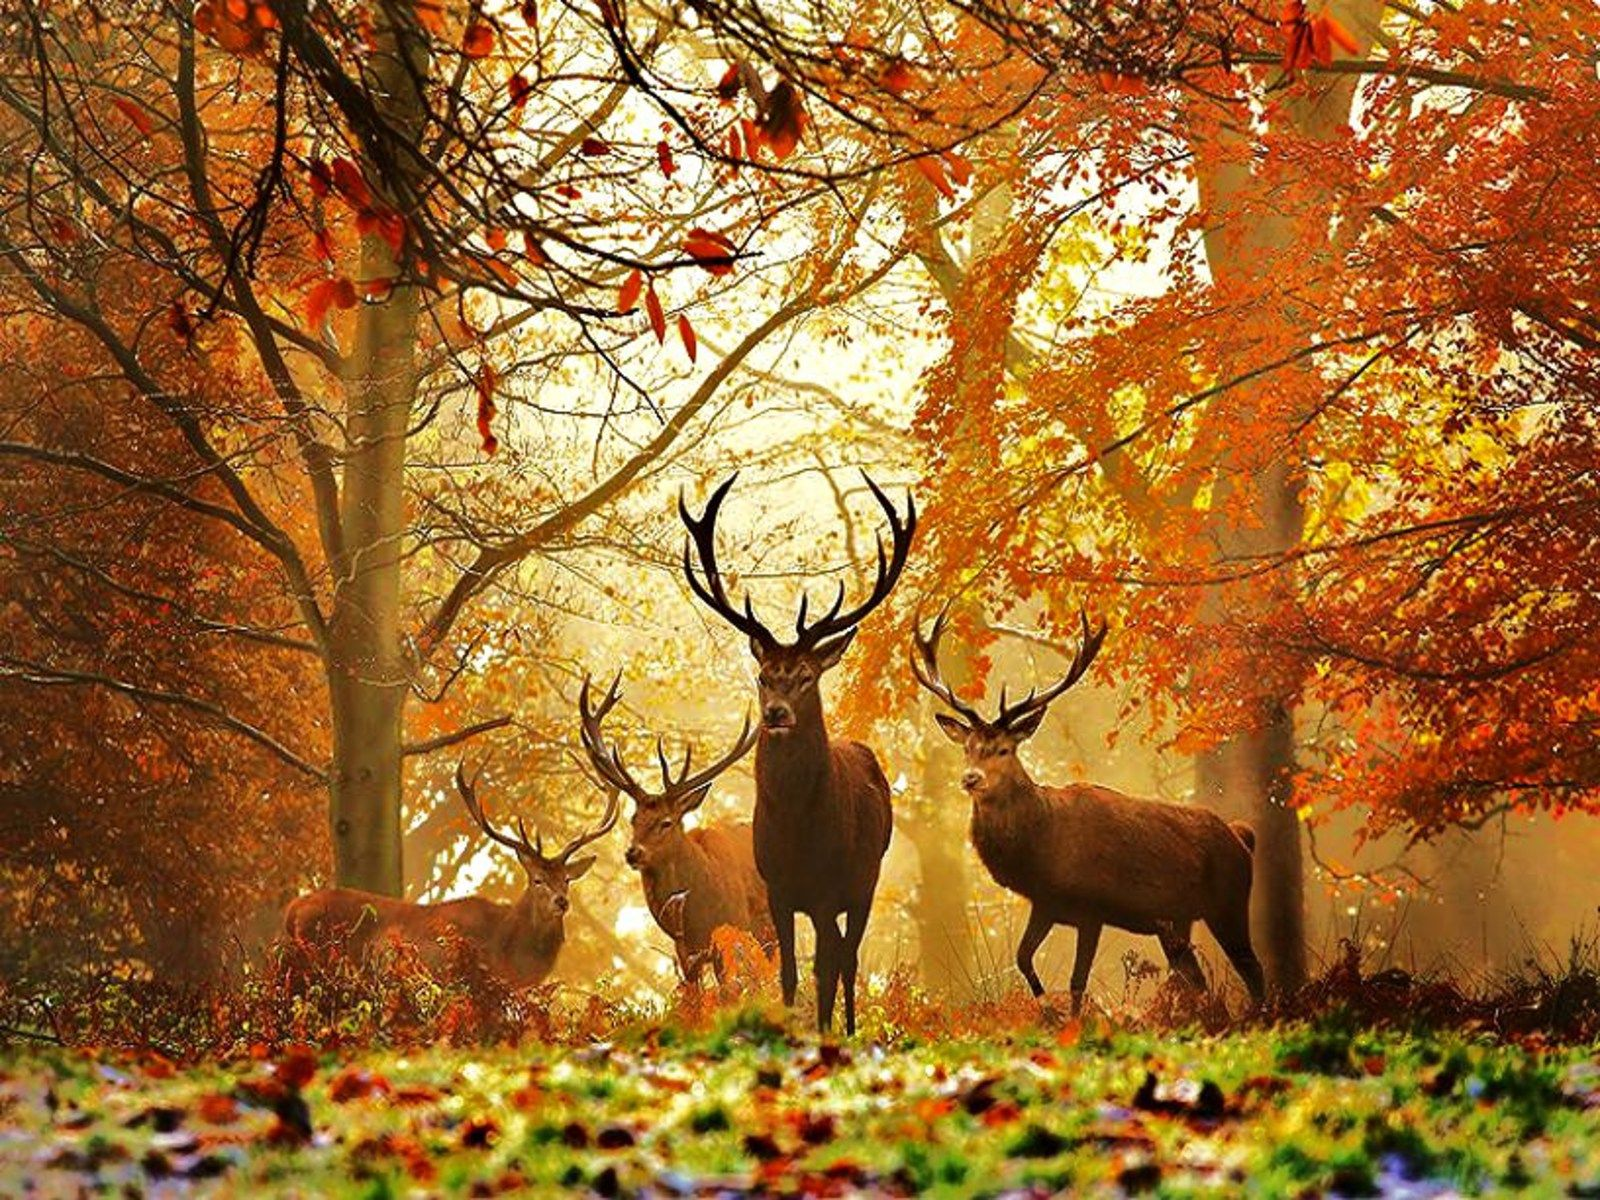 Deer Hunting Wallpapers Best Collection Of Deer Wallpapers by Jitesh